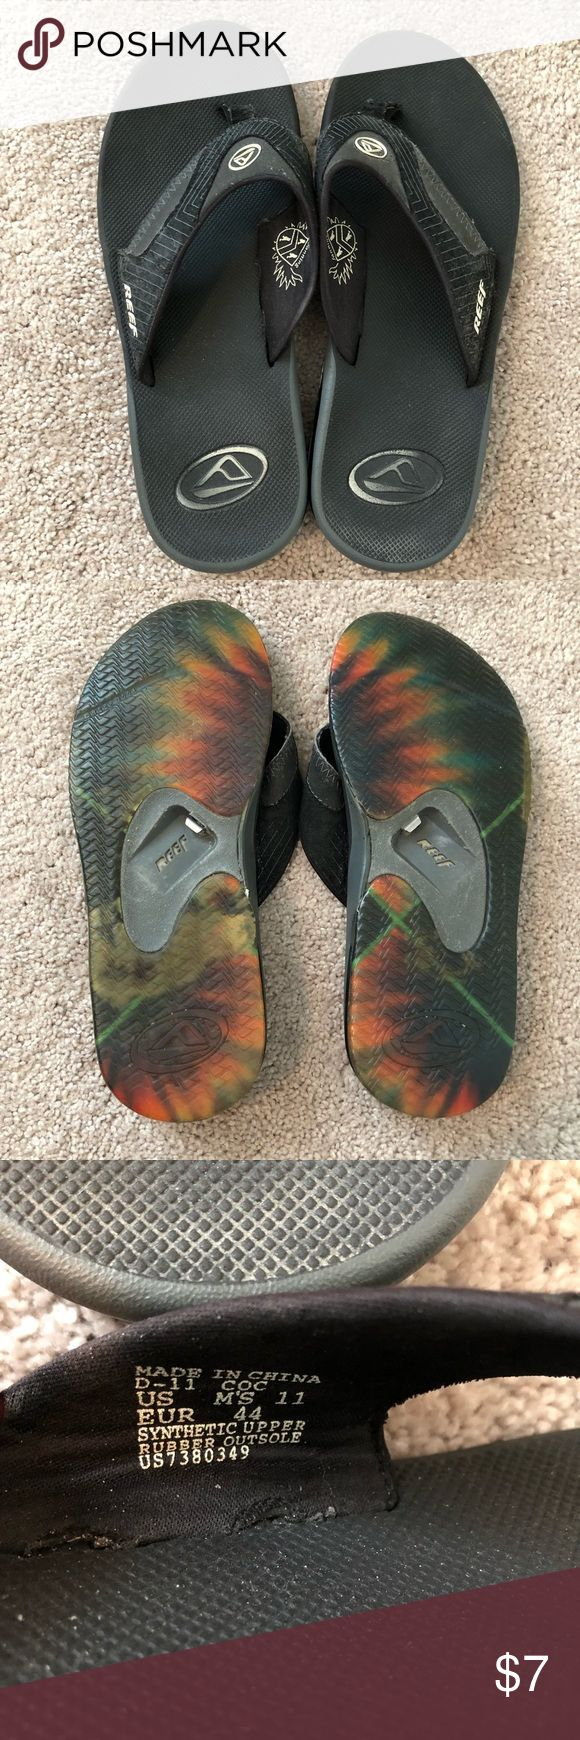 REEF Men's Flipflops Size 11 Black Used condition but lots of life left Bottle cap opener on the bottom!  Tags: reef, toms, rainbows, billabong, quicksilver Reef Shoes Sandals & Flip-Flops